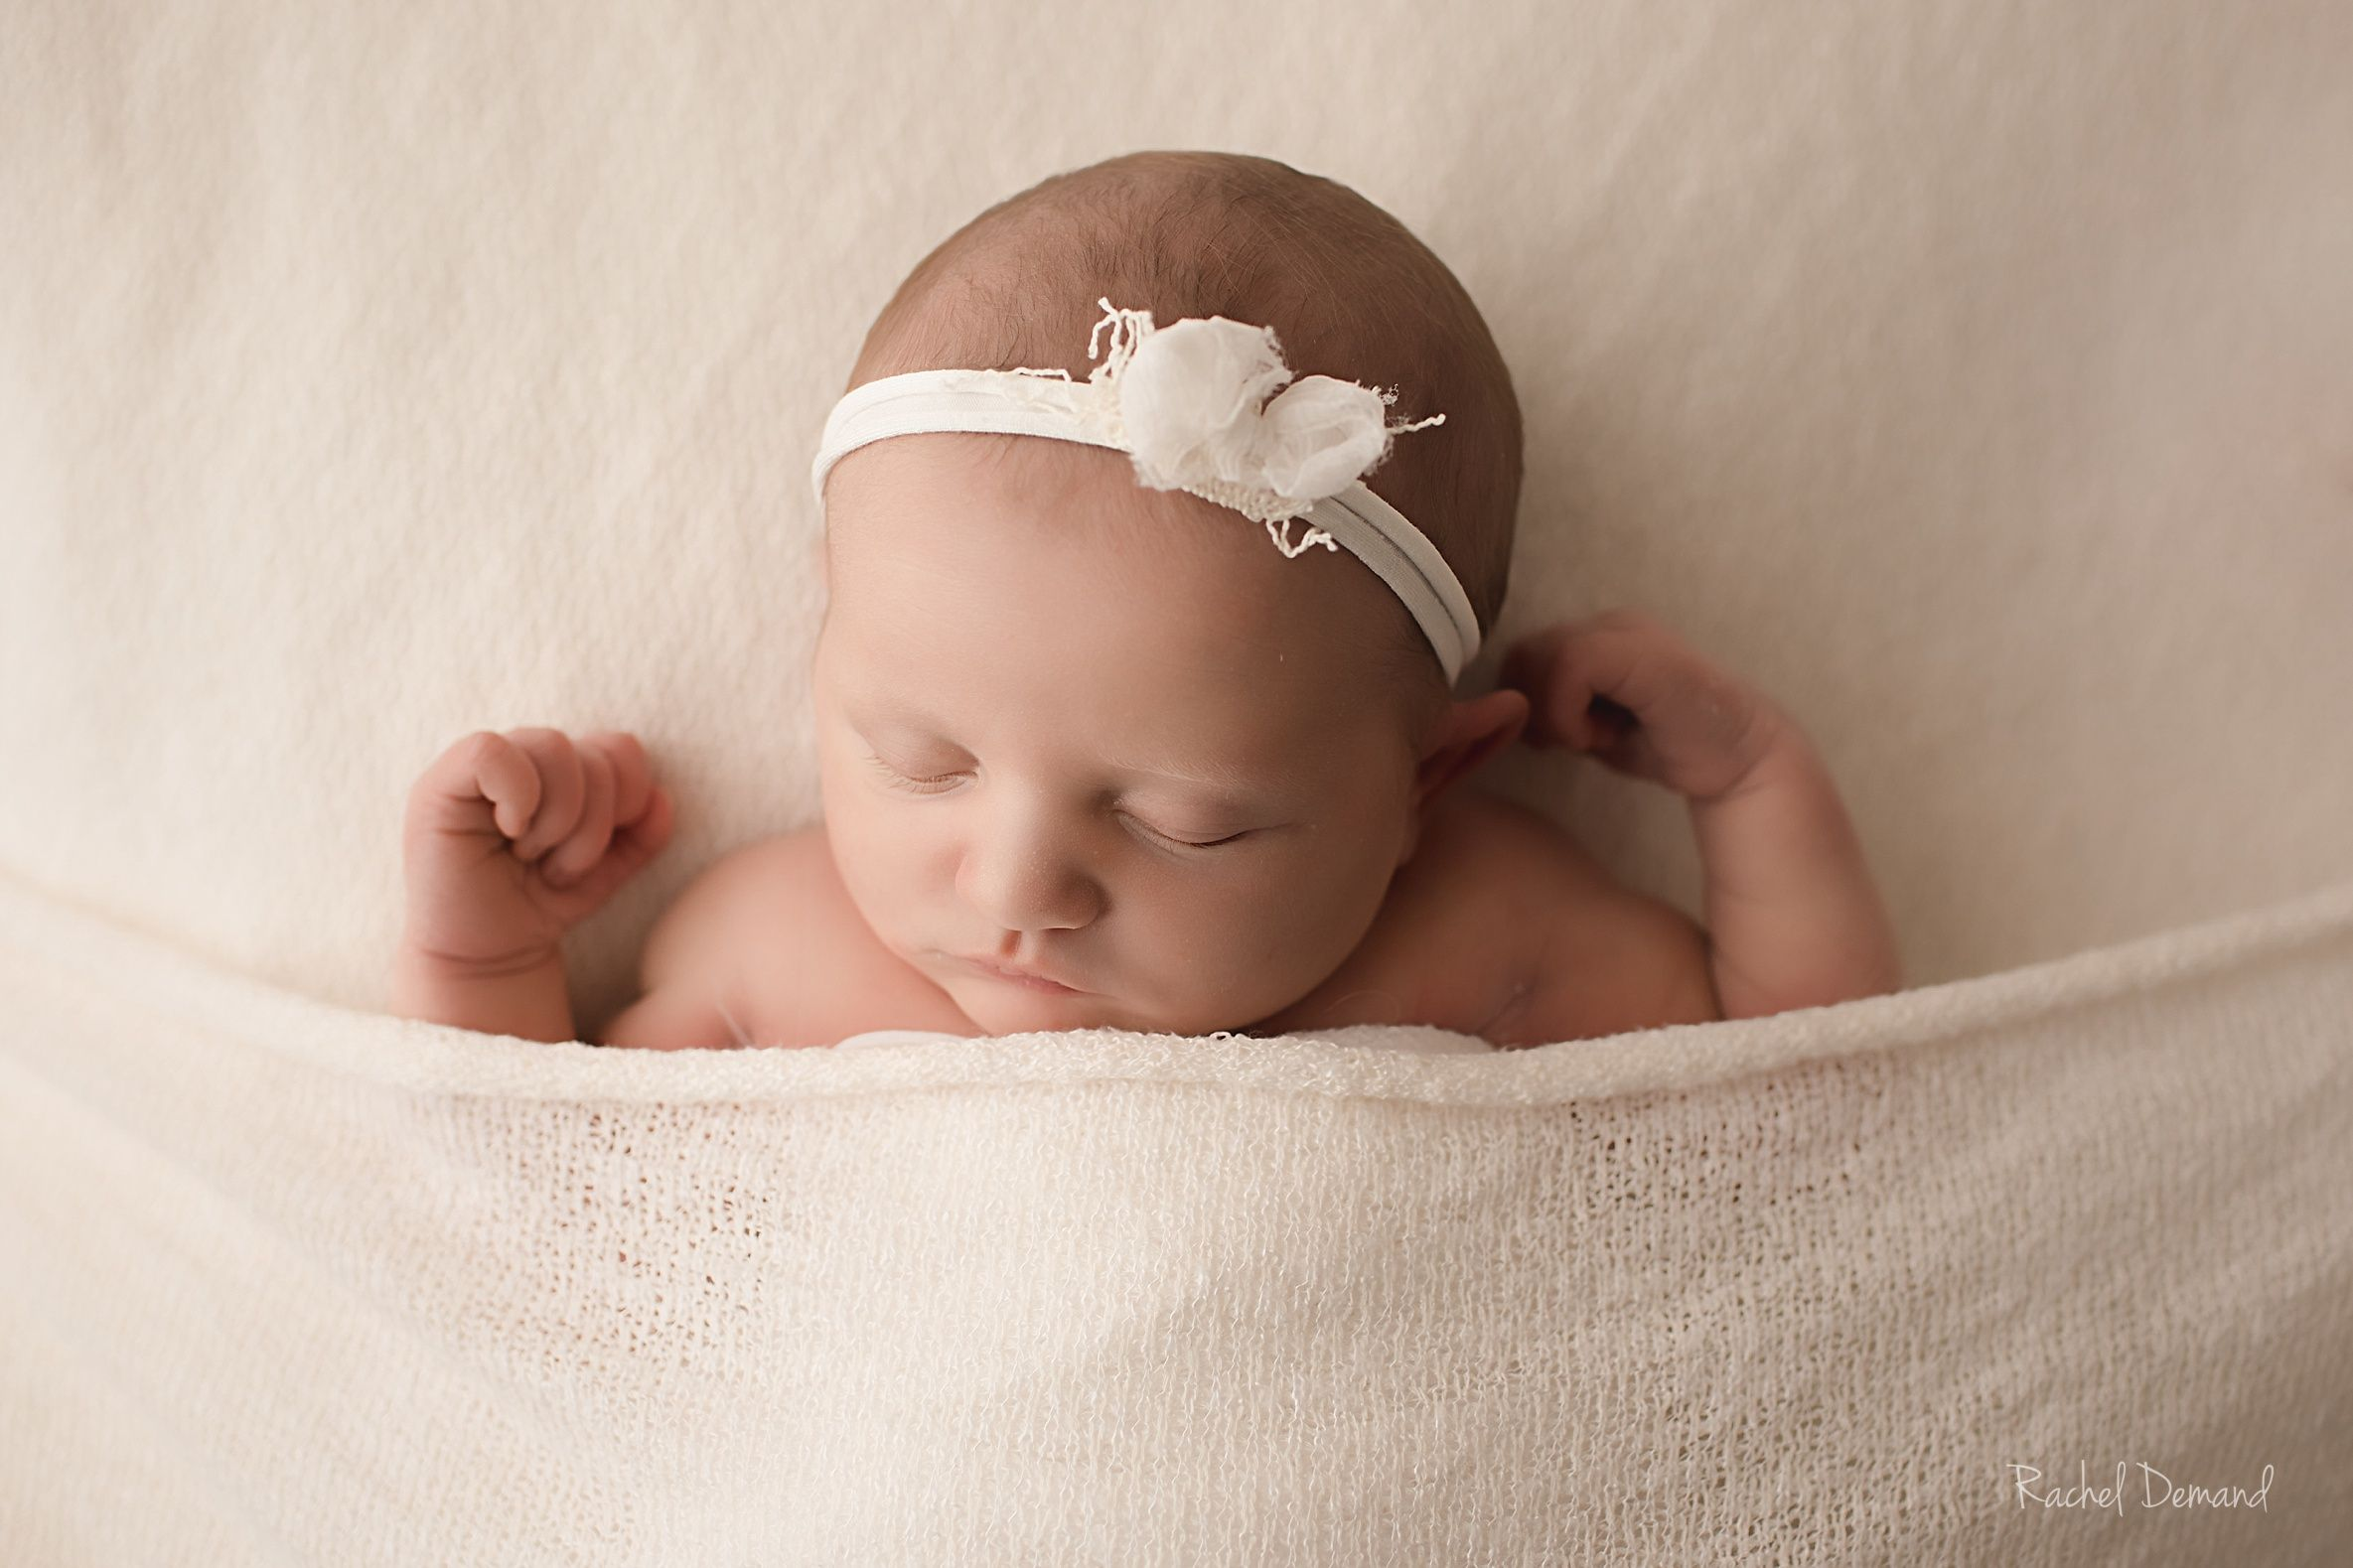 Pin by Aga on Photography picture ideas | Newborn photos